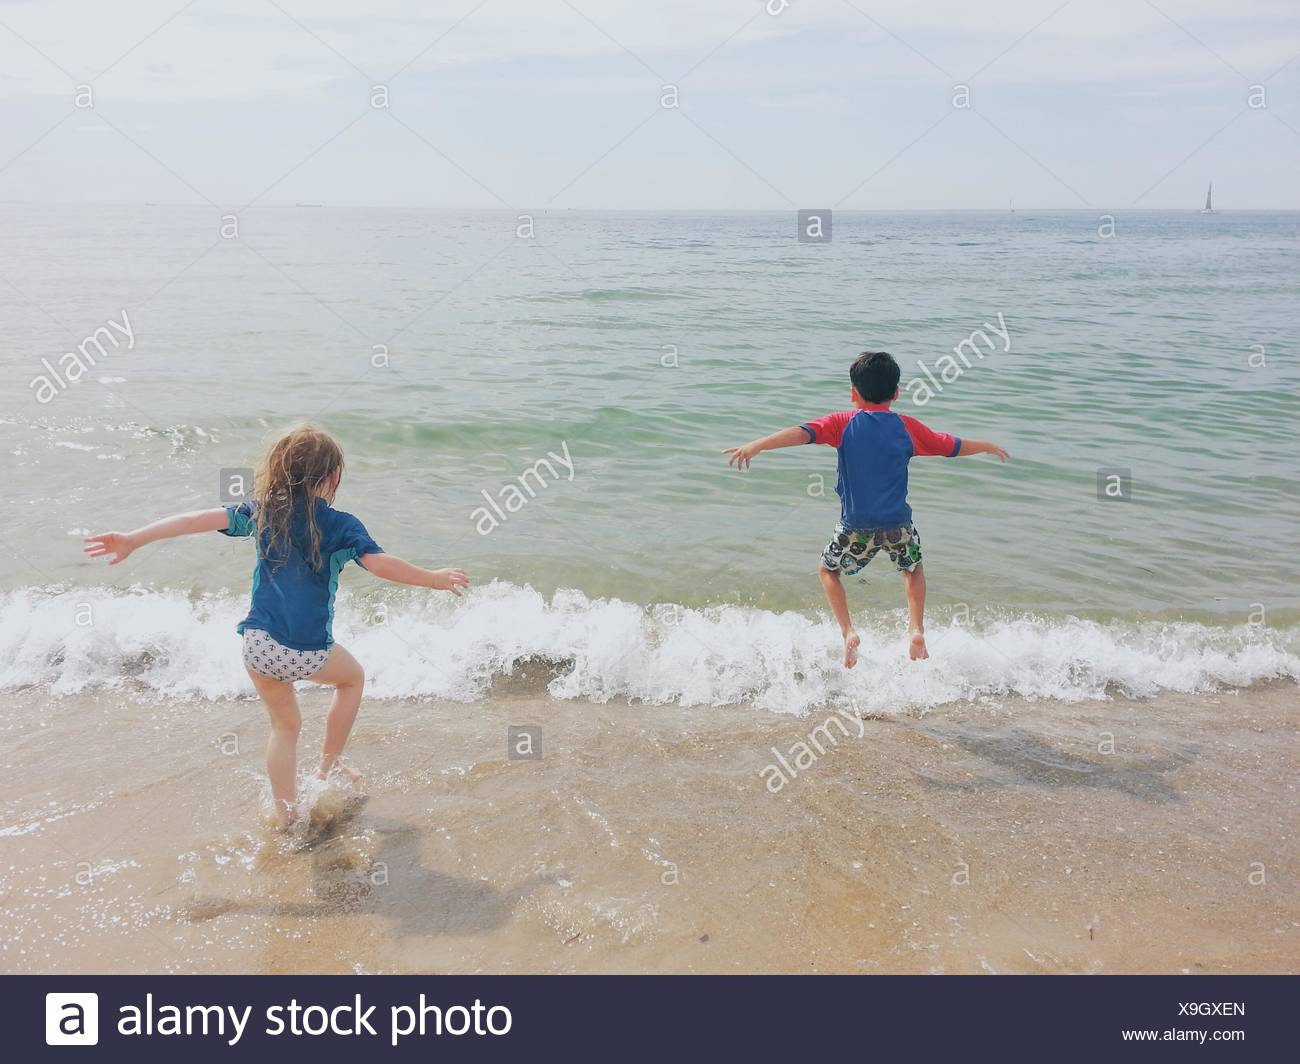 Boy and girl running into the ocean Stock Photo